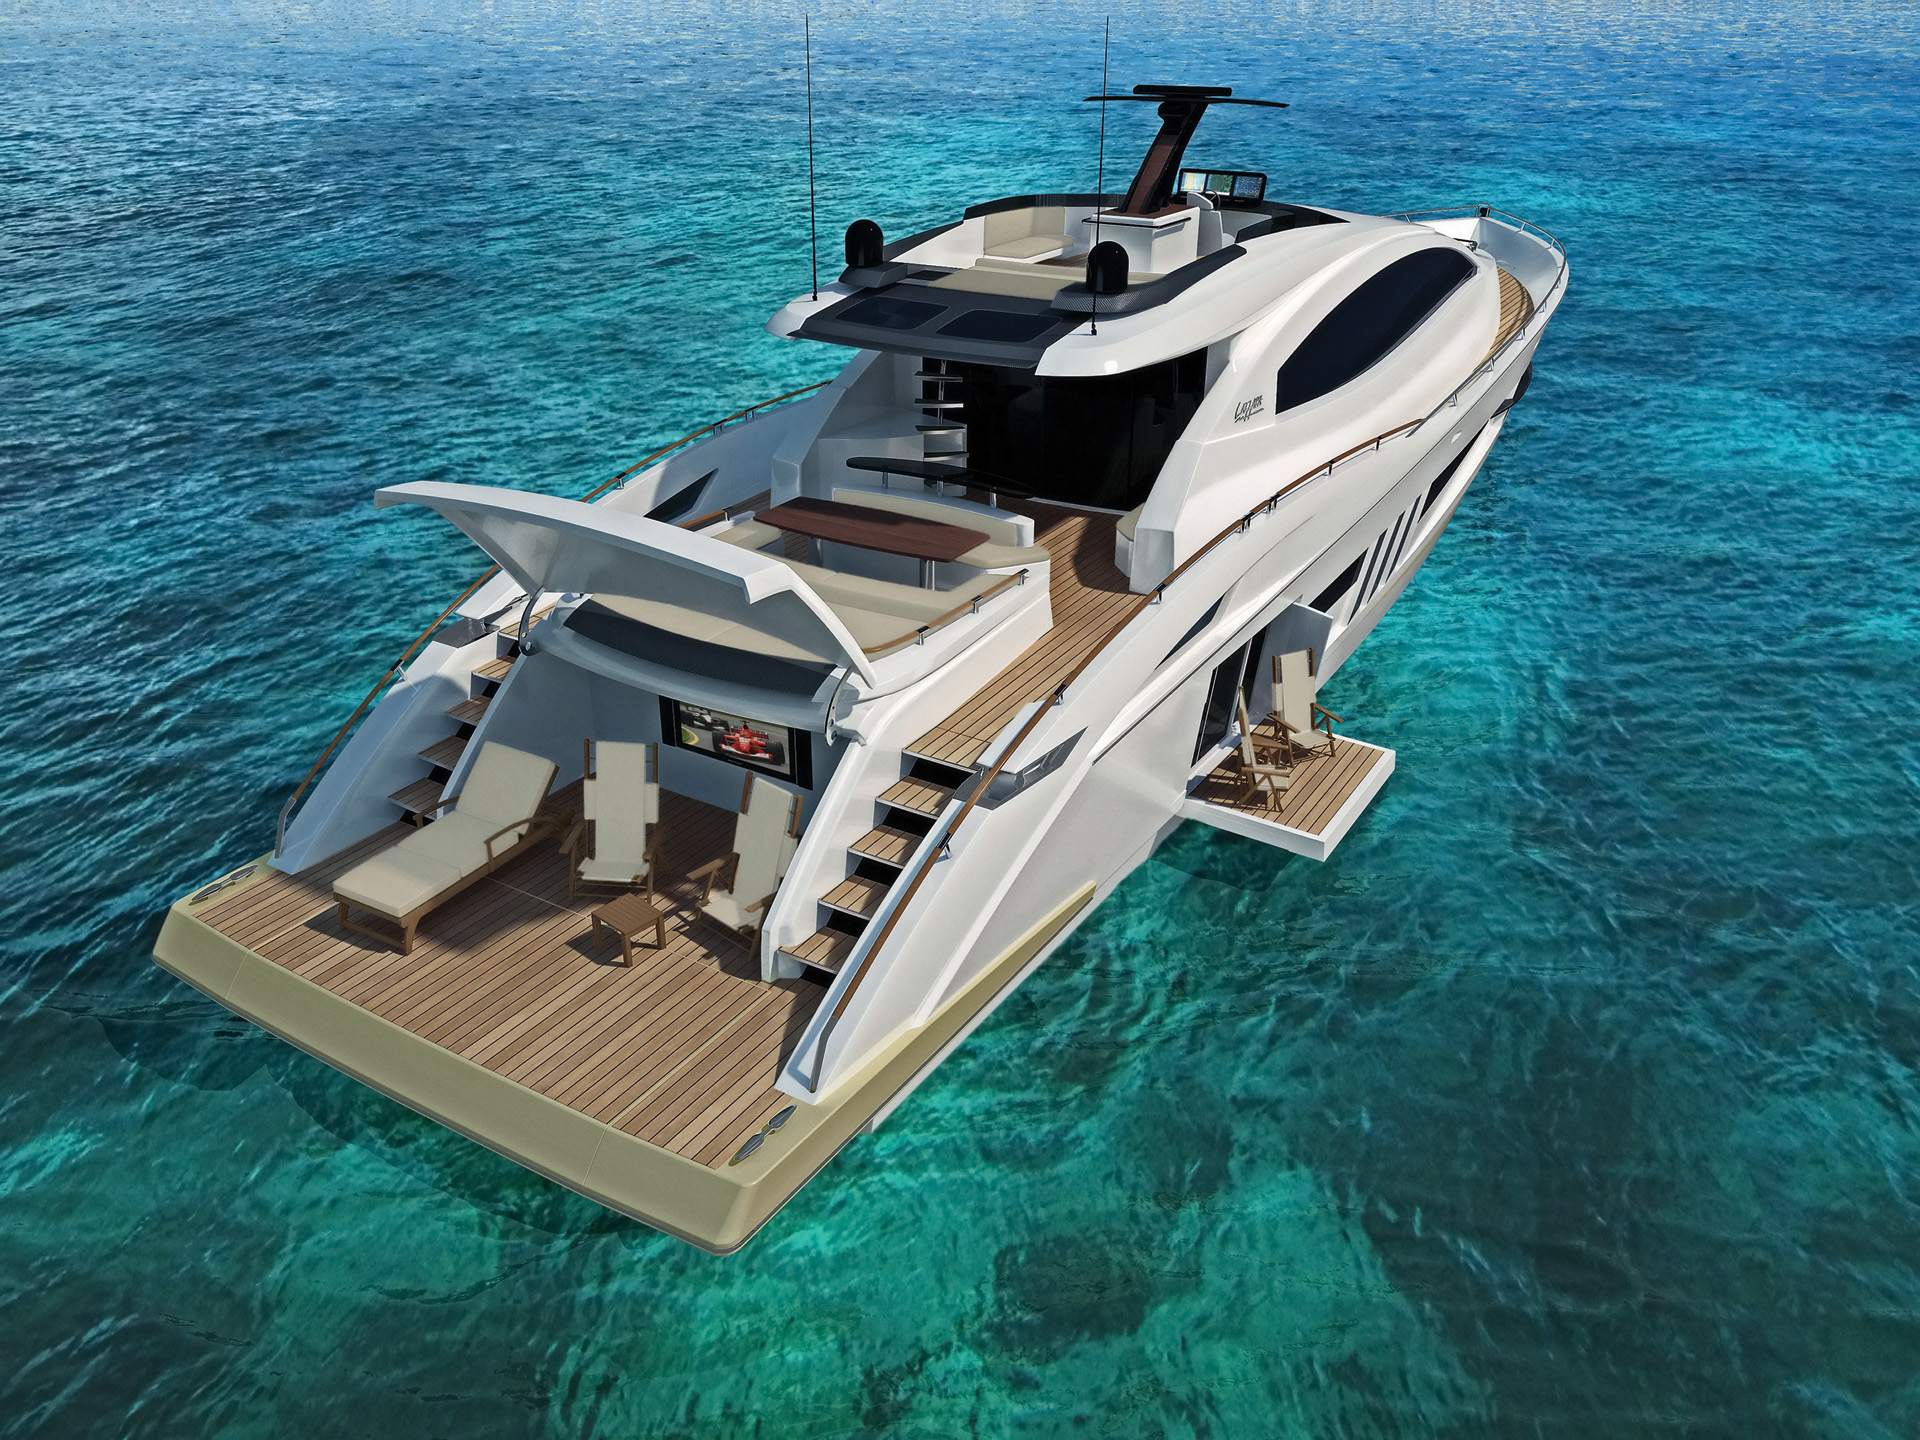 2016 Luxury Yacht price